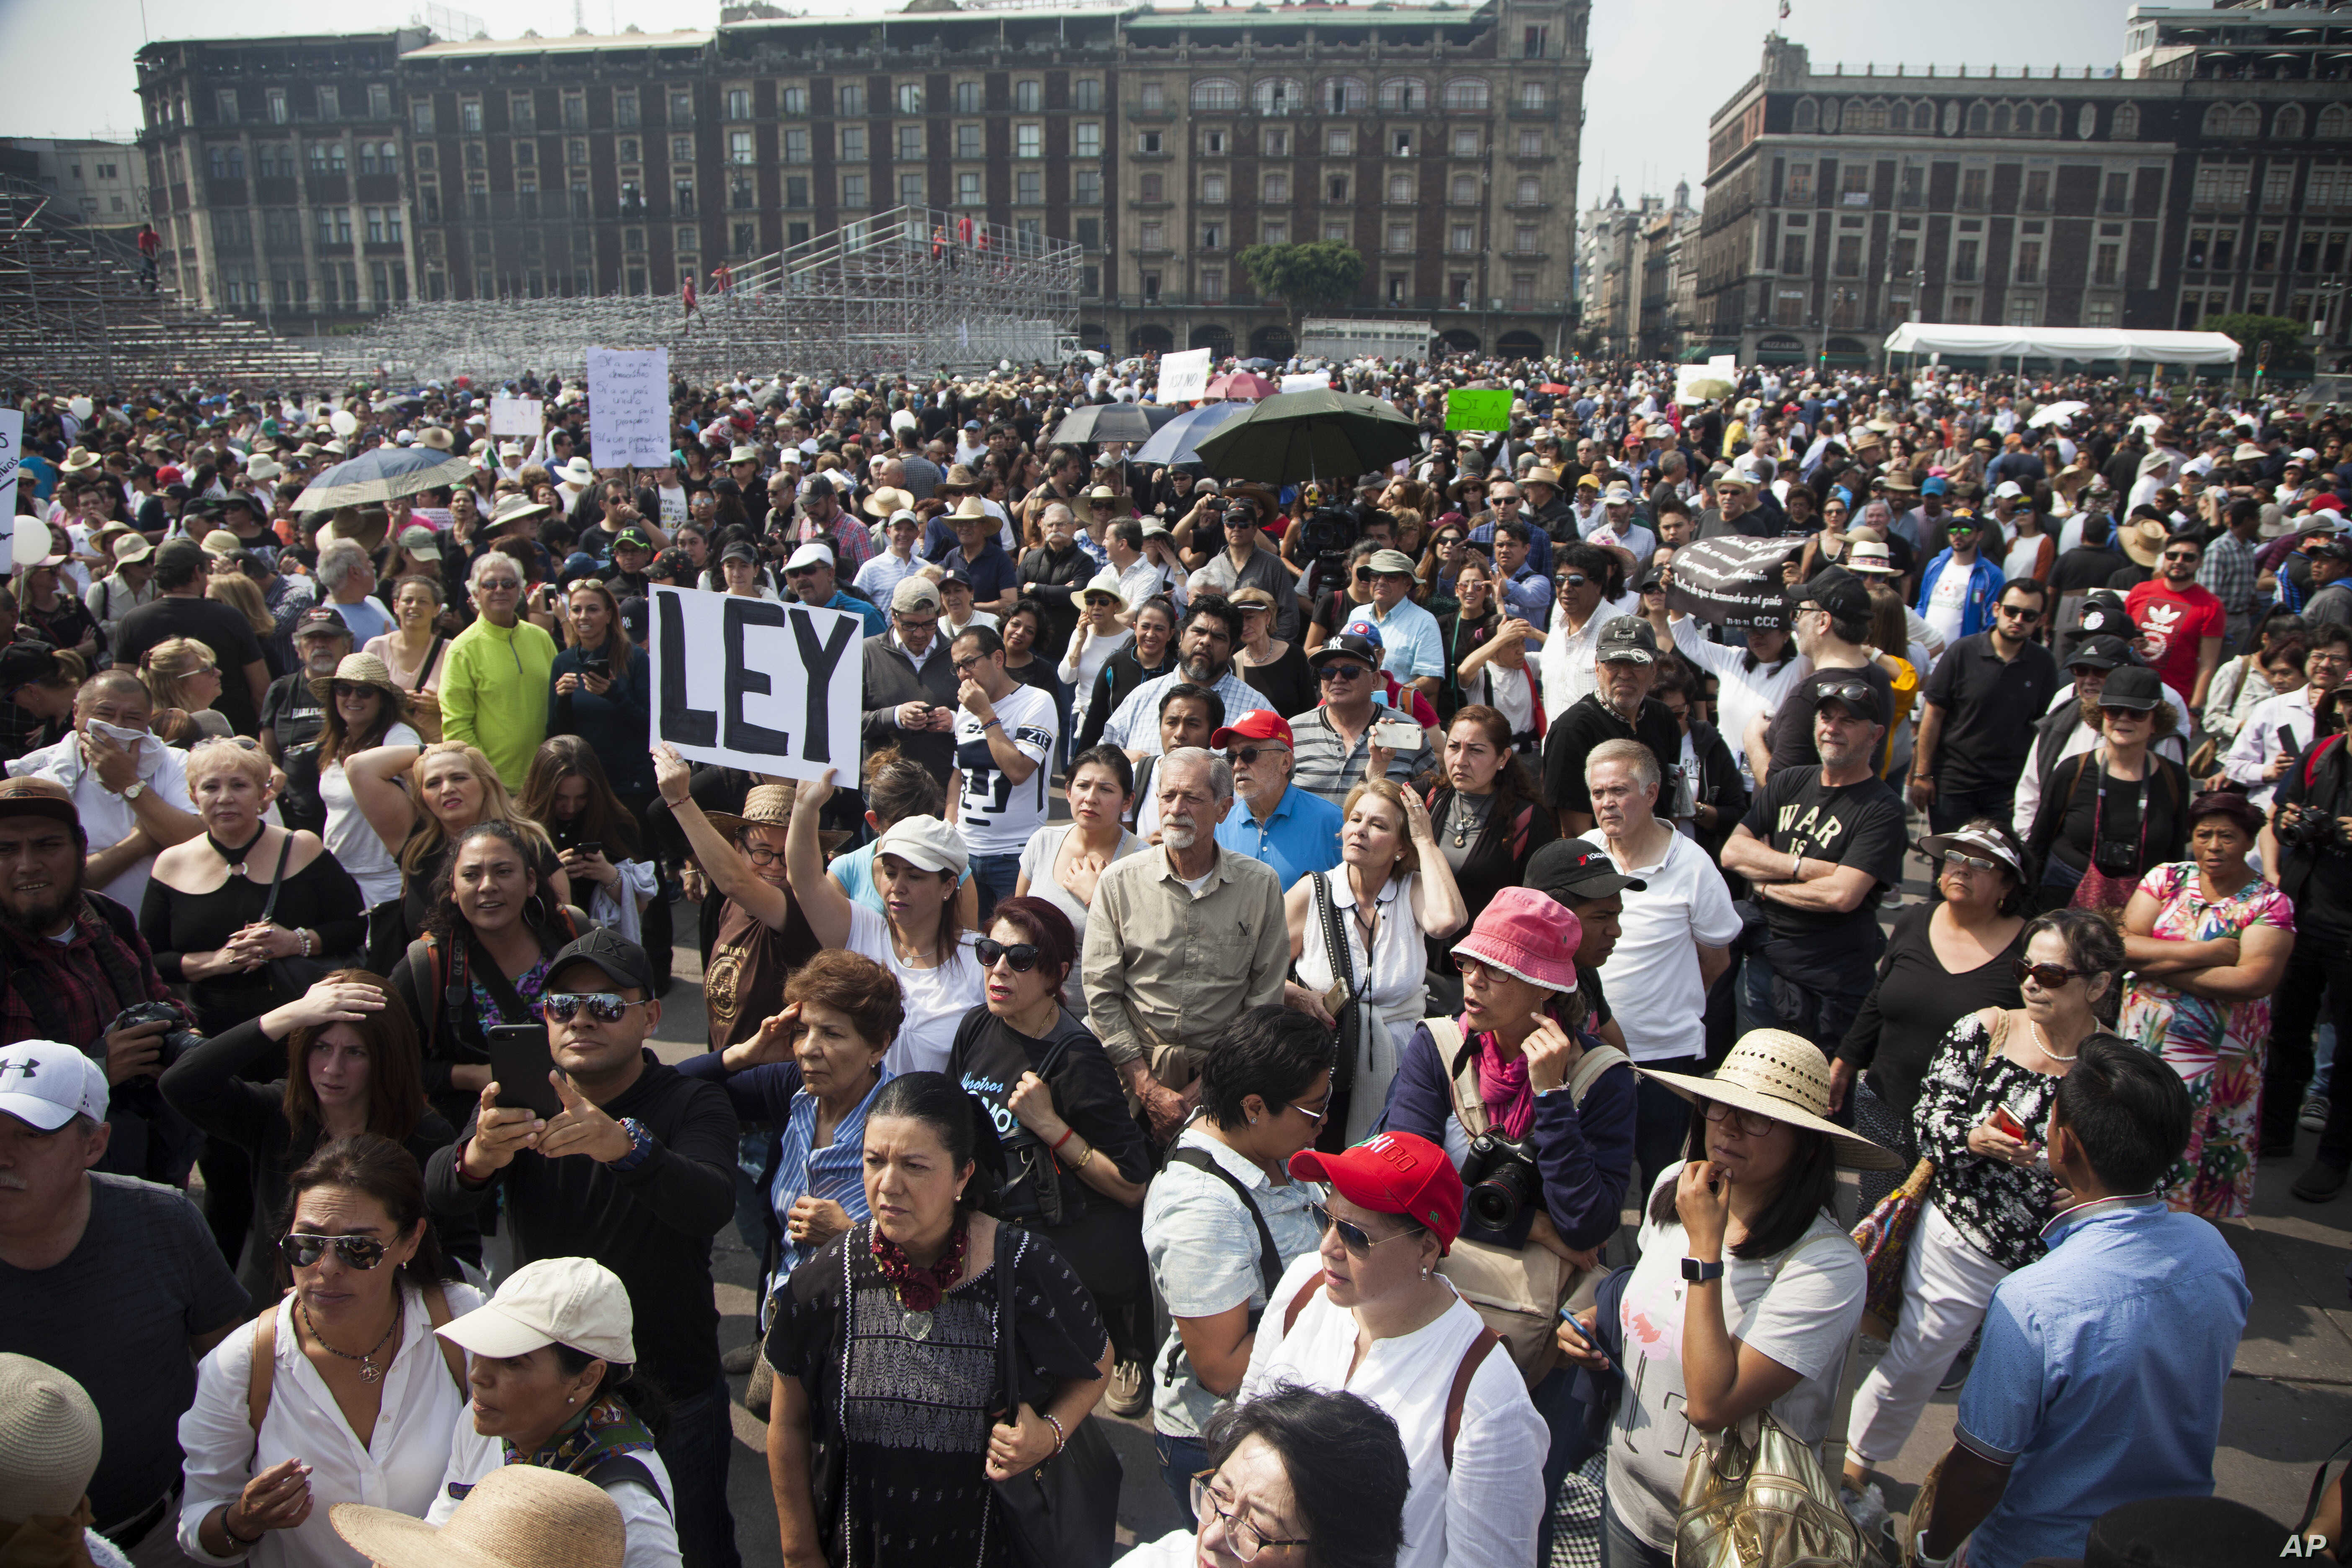 FILE - Thousands of people protest in Mexico City in opposition to President-elect Andres Manuel Lopez Obrador's plans to cancel a new $13 billion airport for the capital, Nov. 11, 2018.